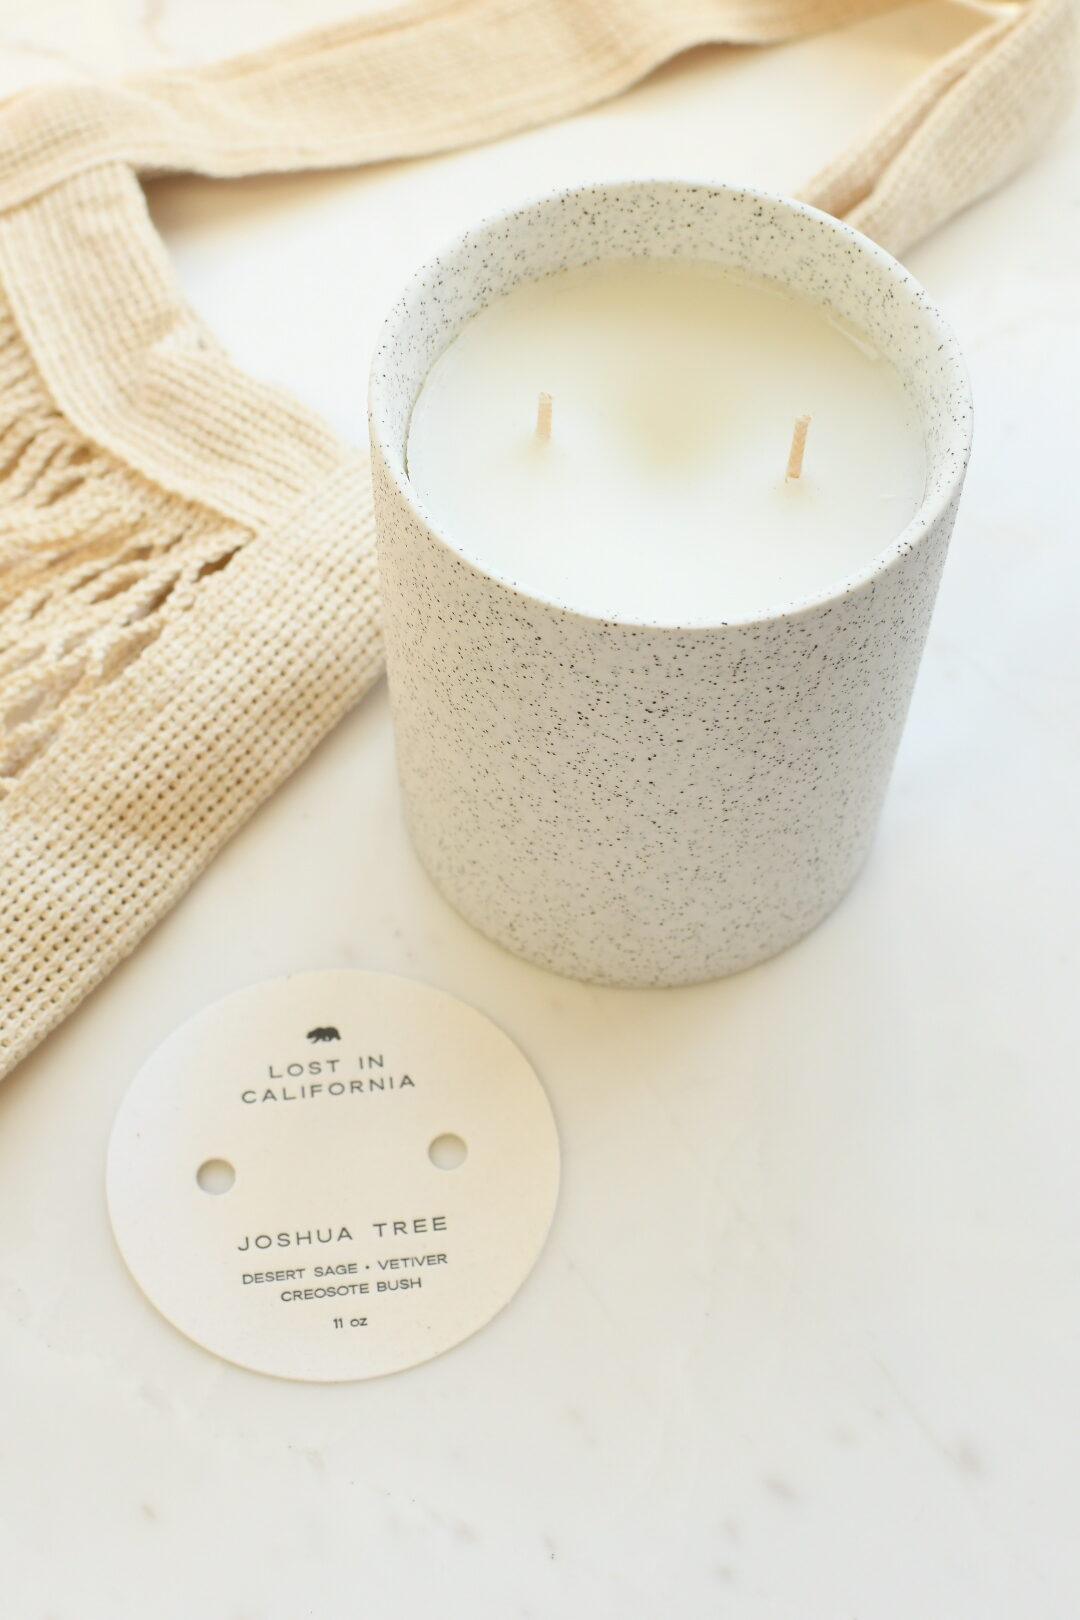 California Products by popular Monterey life and style blog, Haute Beauty Guide: image of a California inspired candle next to a mesh shopping bag.